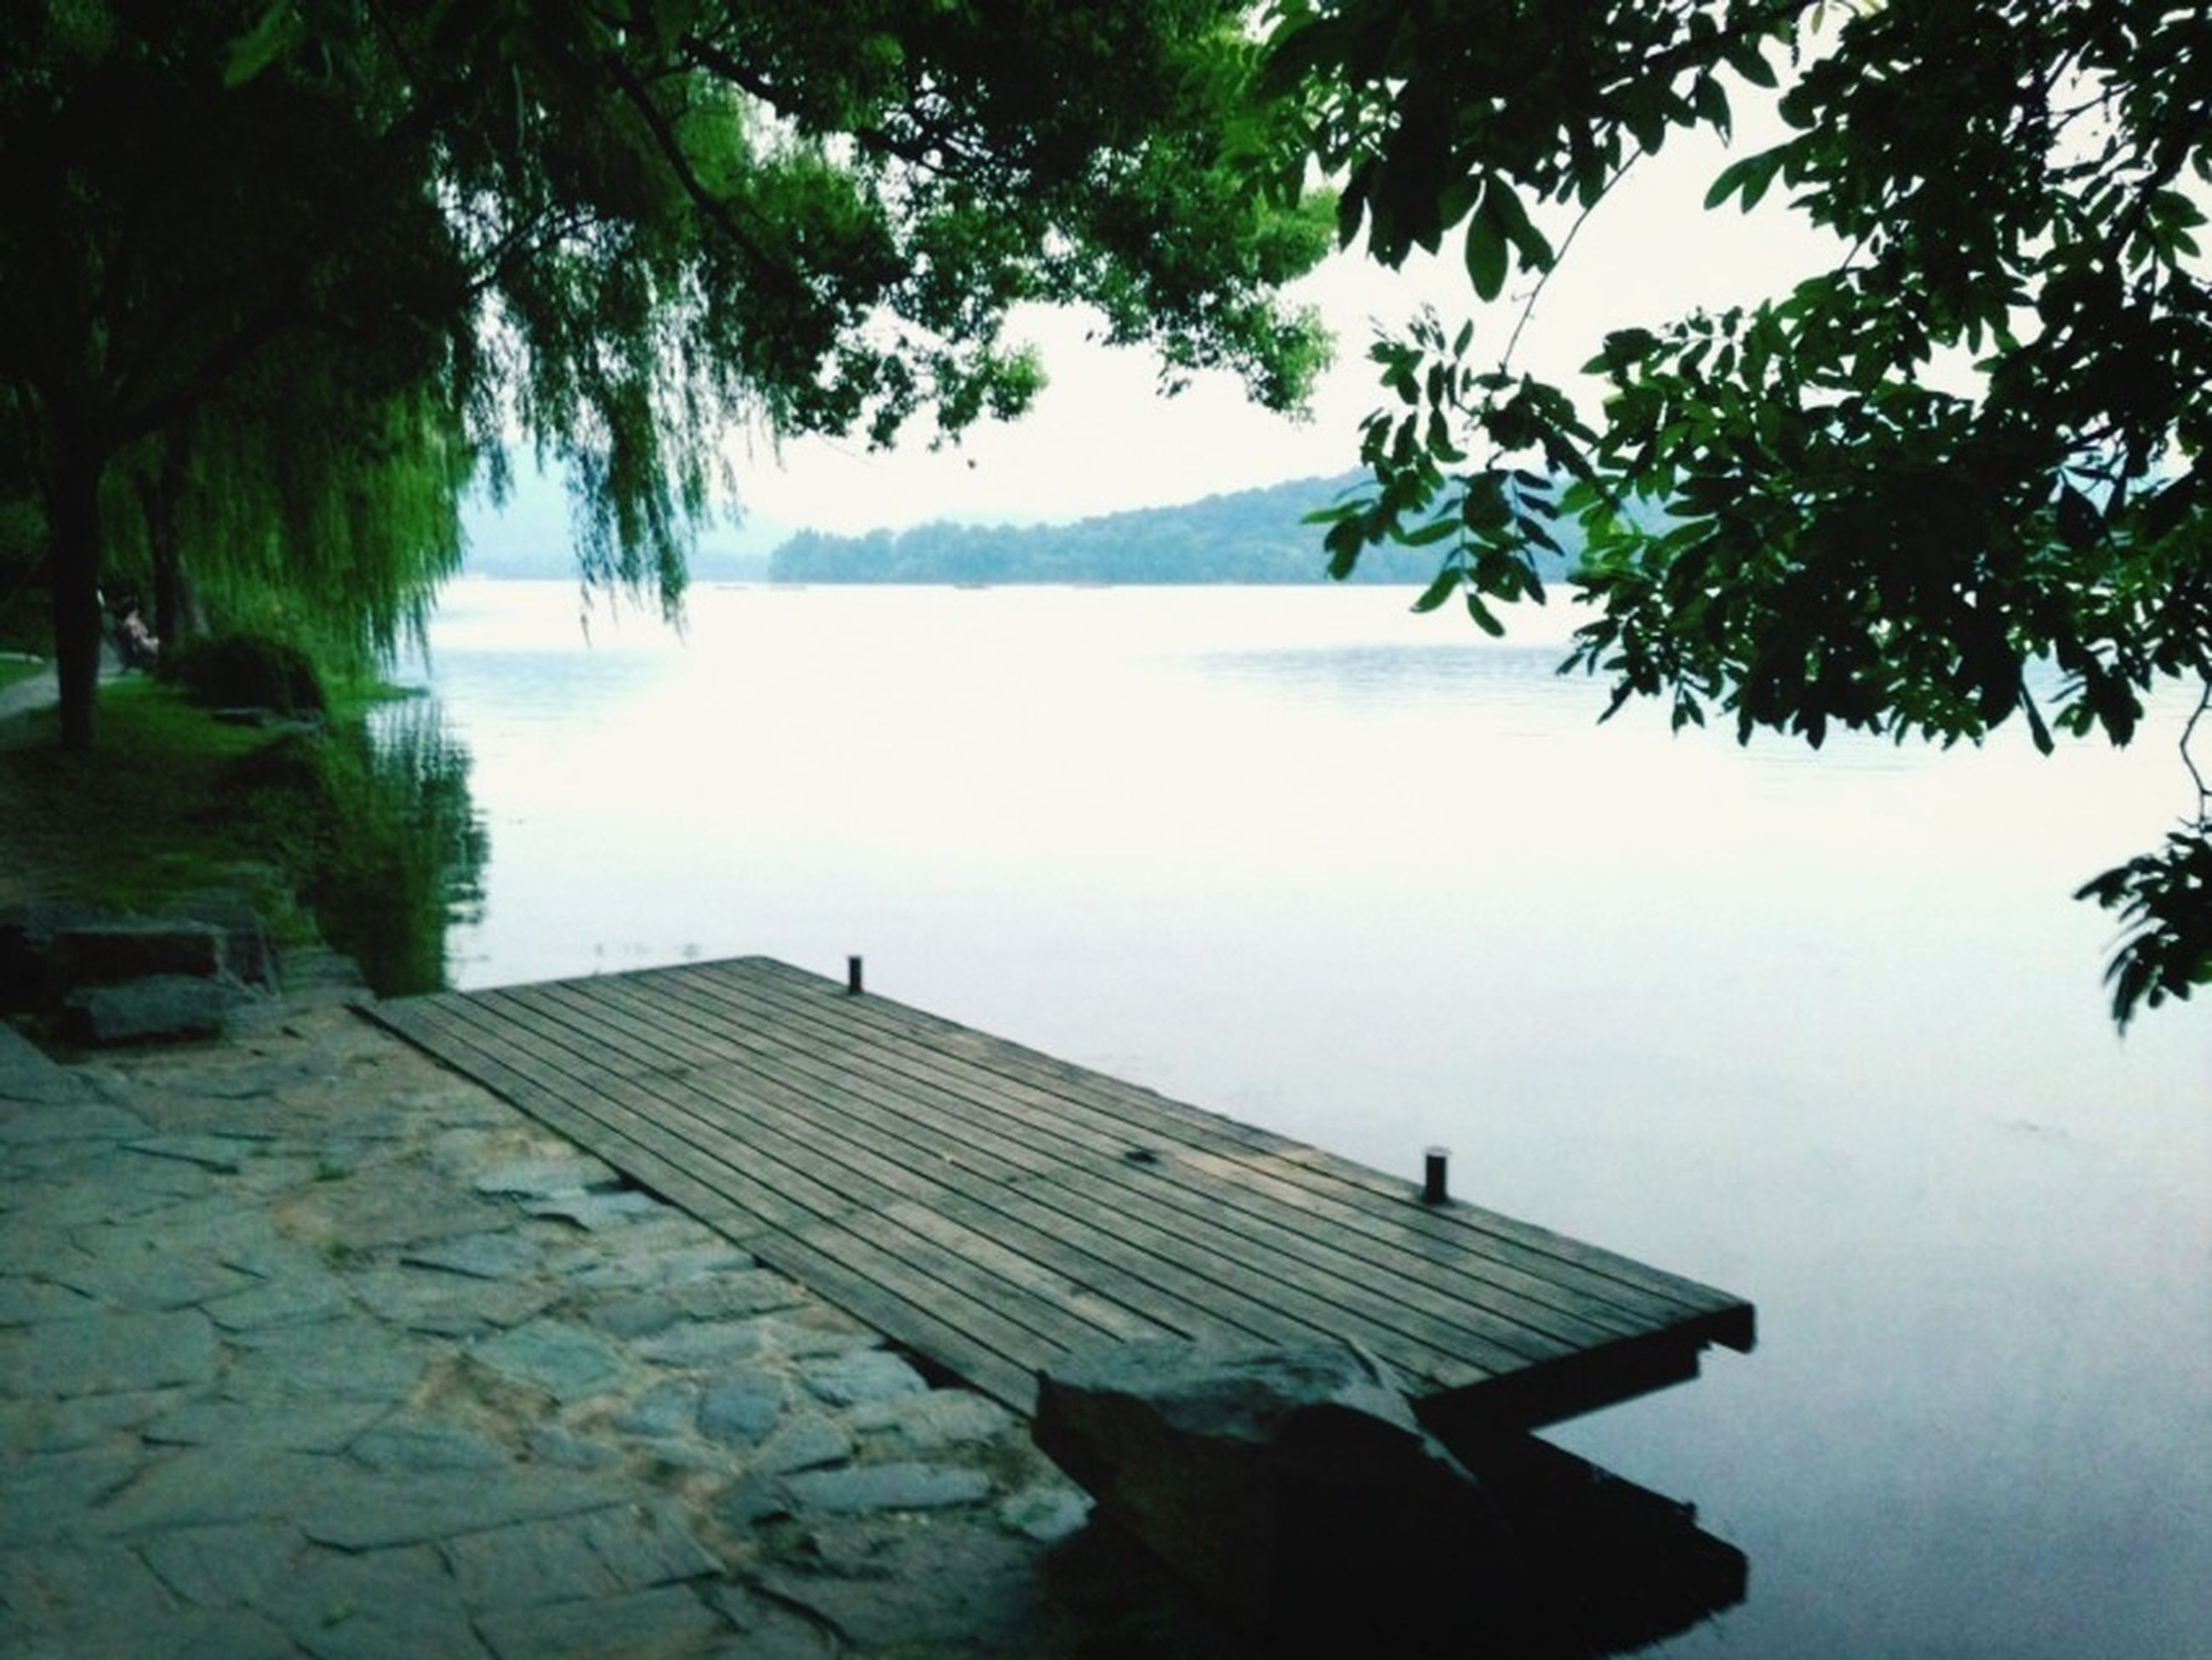 tree, building exterior, built structure, water, architecture, lake, bench, house, tranquility, nature, roof, tranquil scene, day, outdoors, sky, sunlight, clear sky, growth, no people, branch